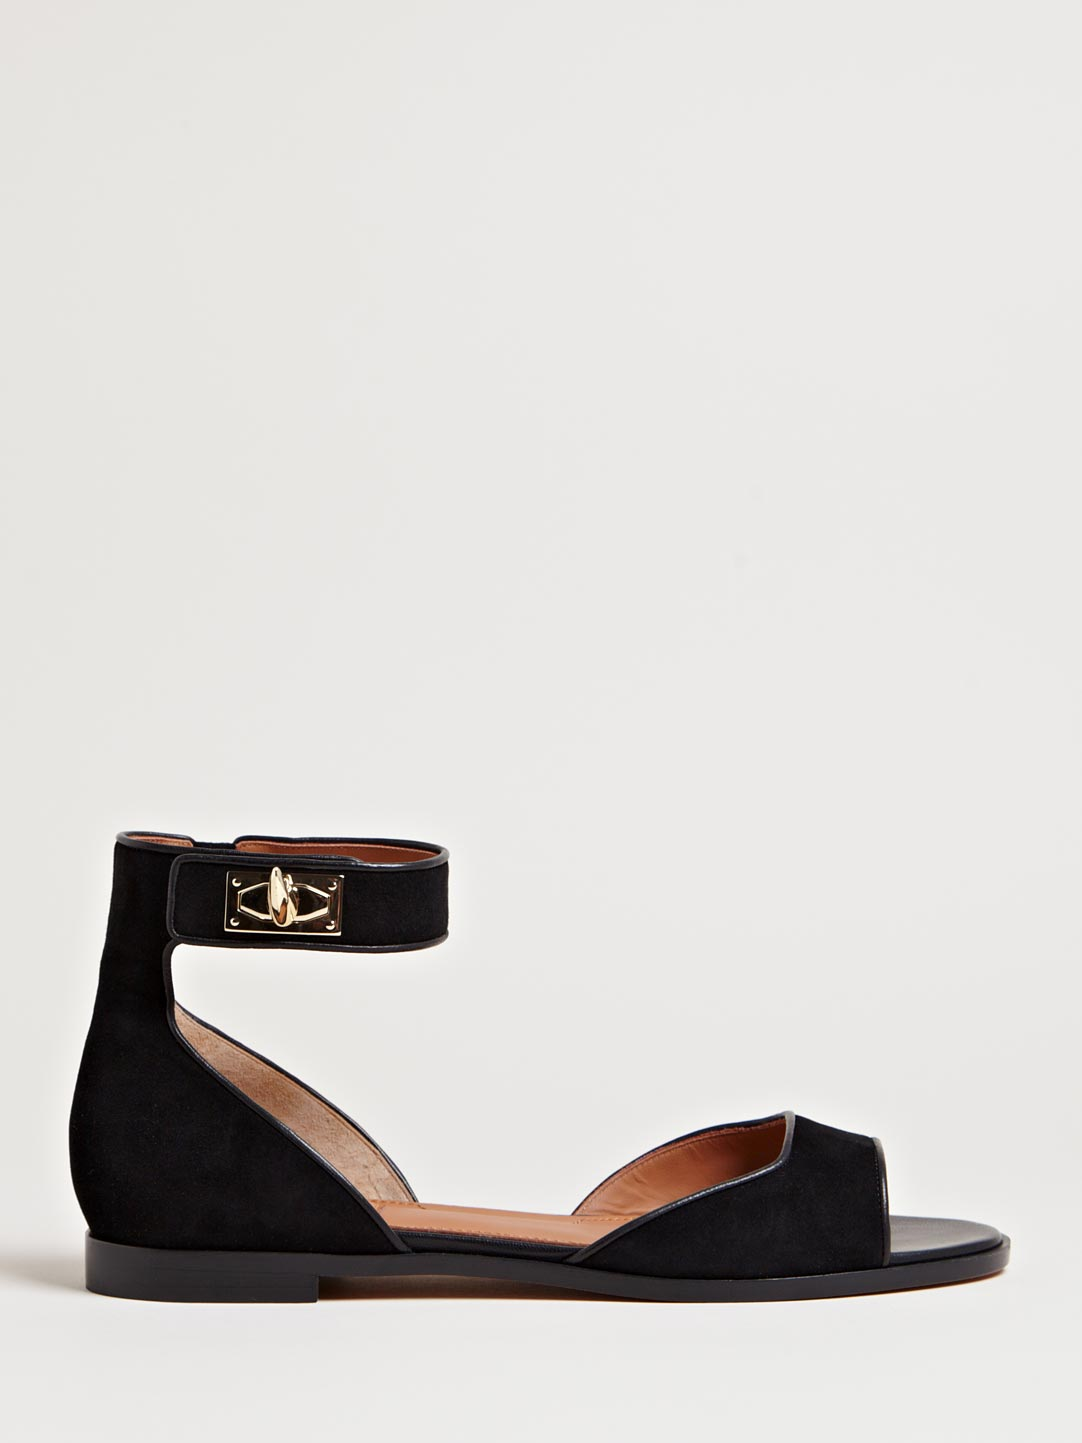 Givenchy Womens Ankle Strap Sandals In Black Lyst